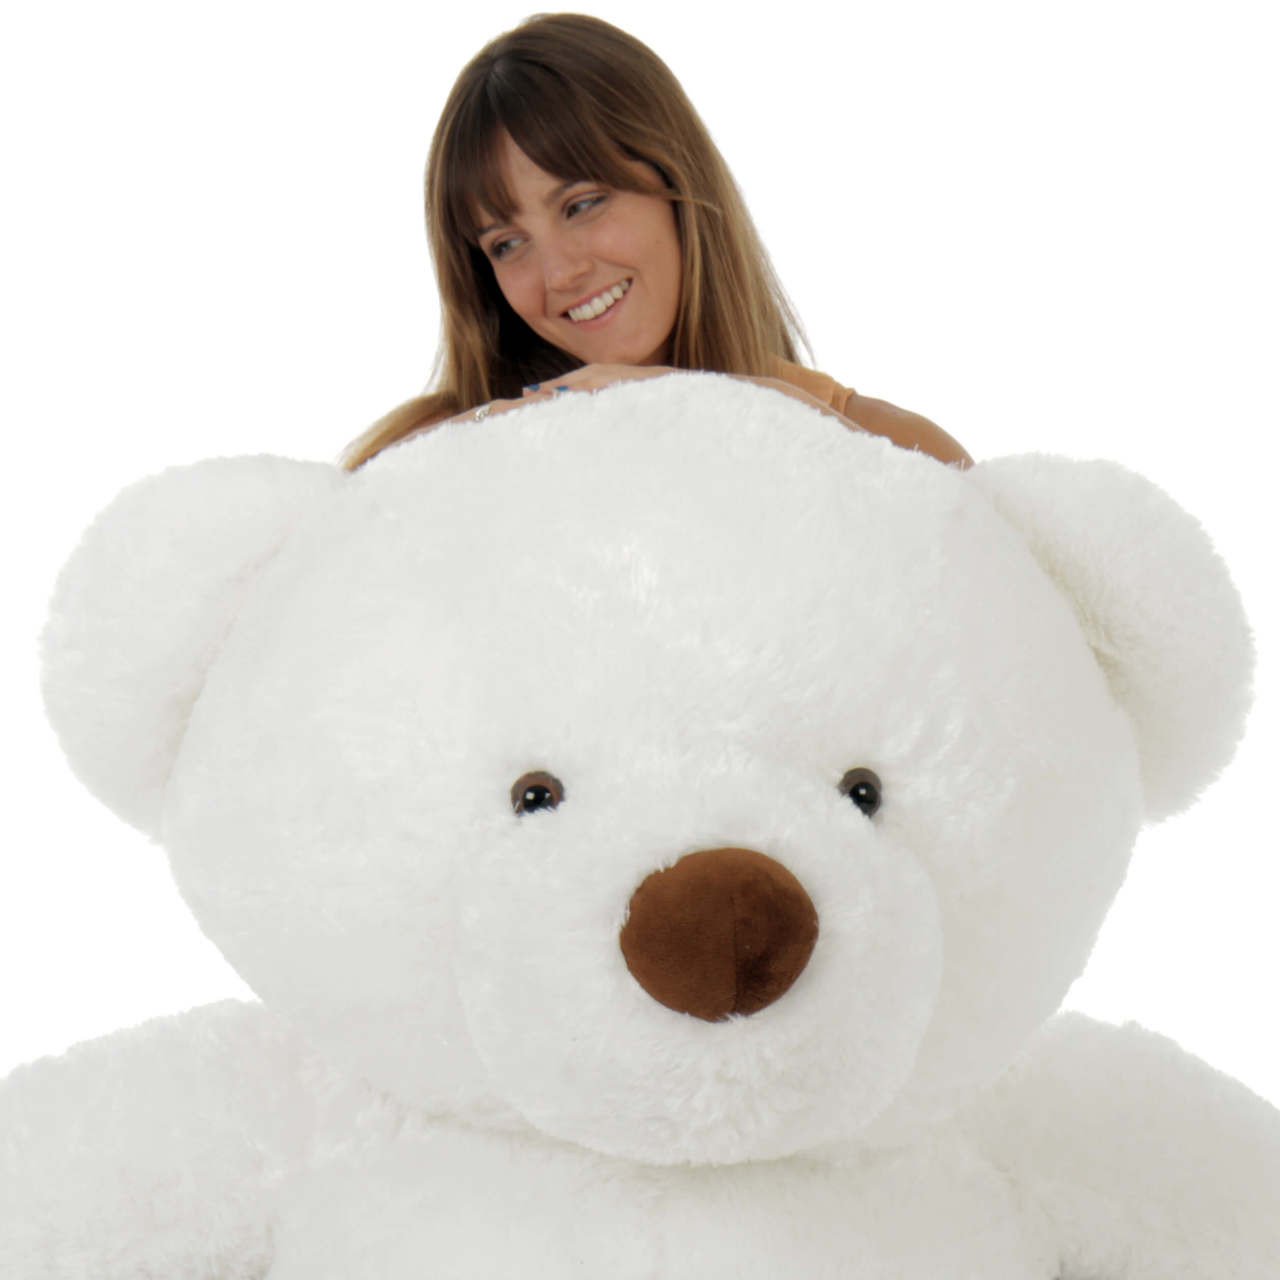 Super Soft and Adorable Giant 5 Foot White Teddy Bear